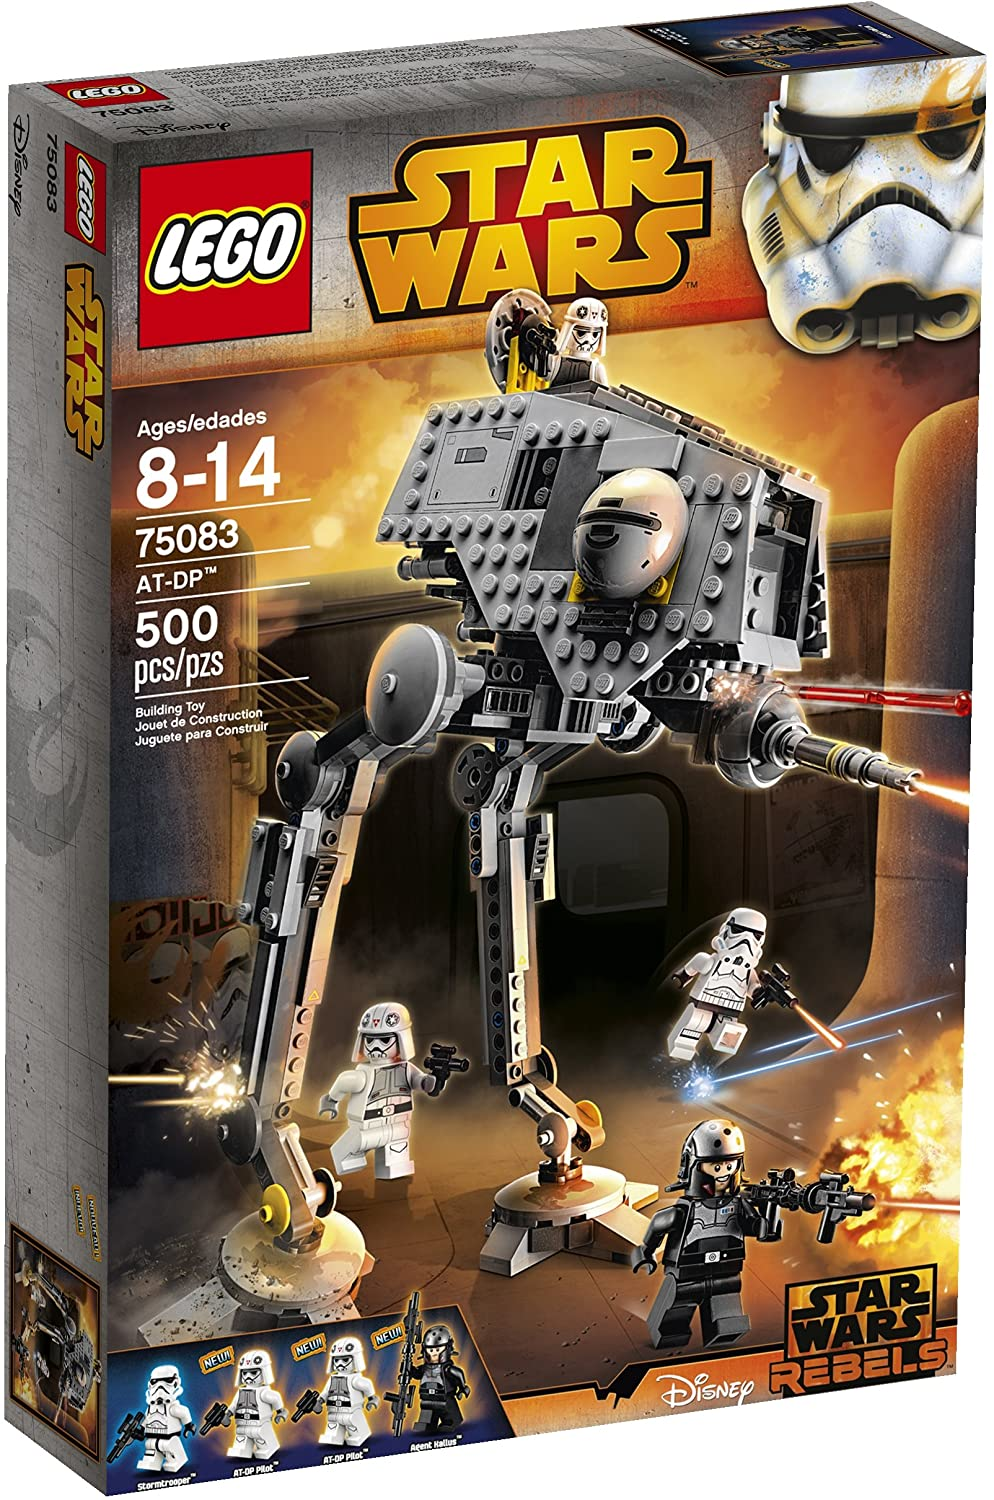 LEGO Star Wars AT-DP Toy (Discontinued by manufacturer)